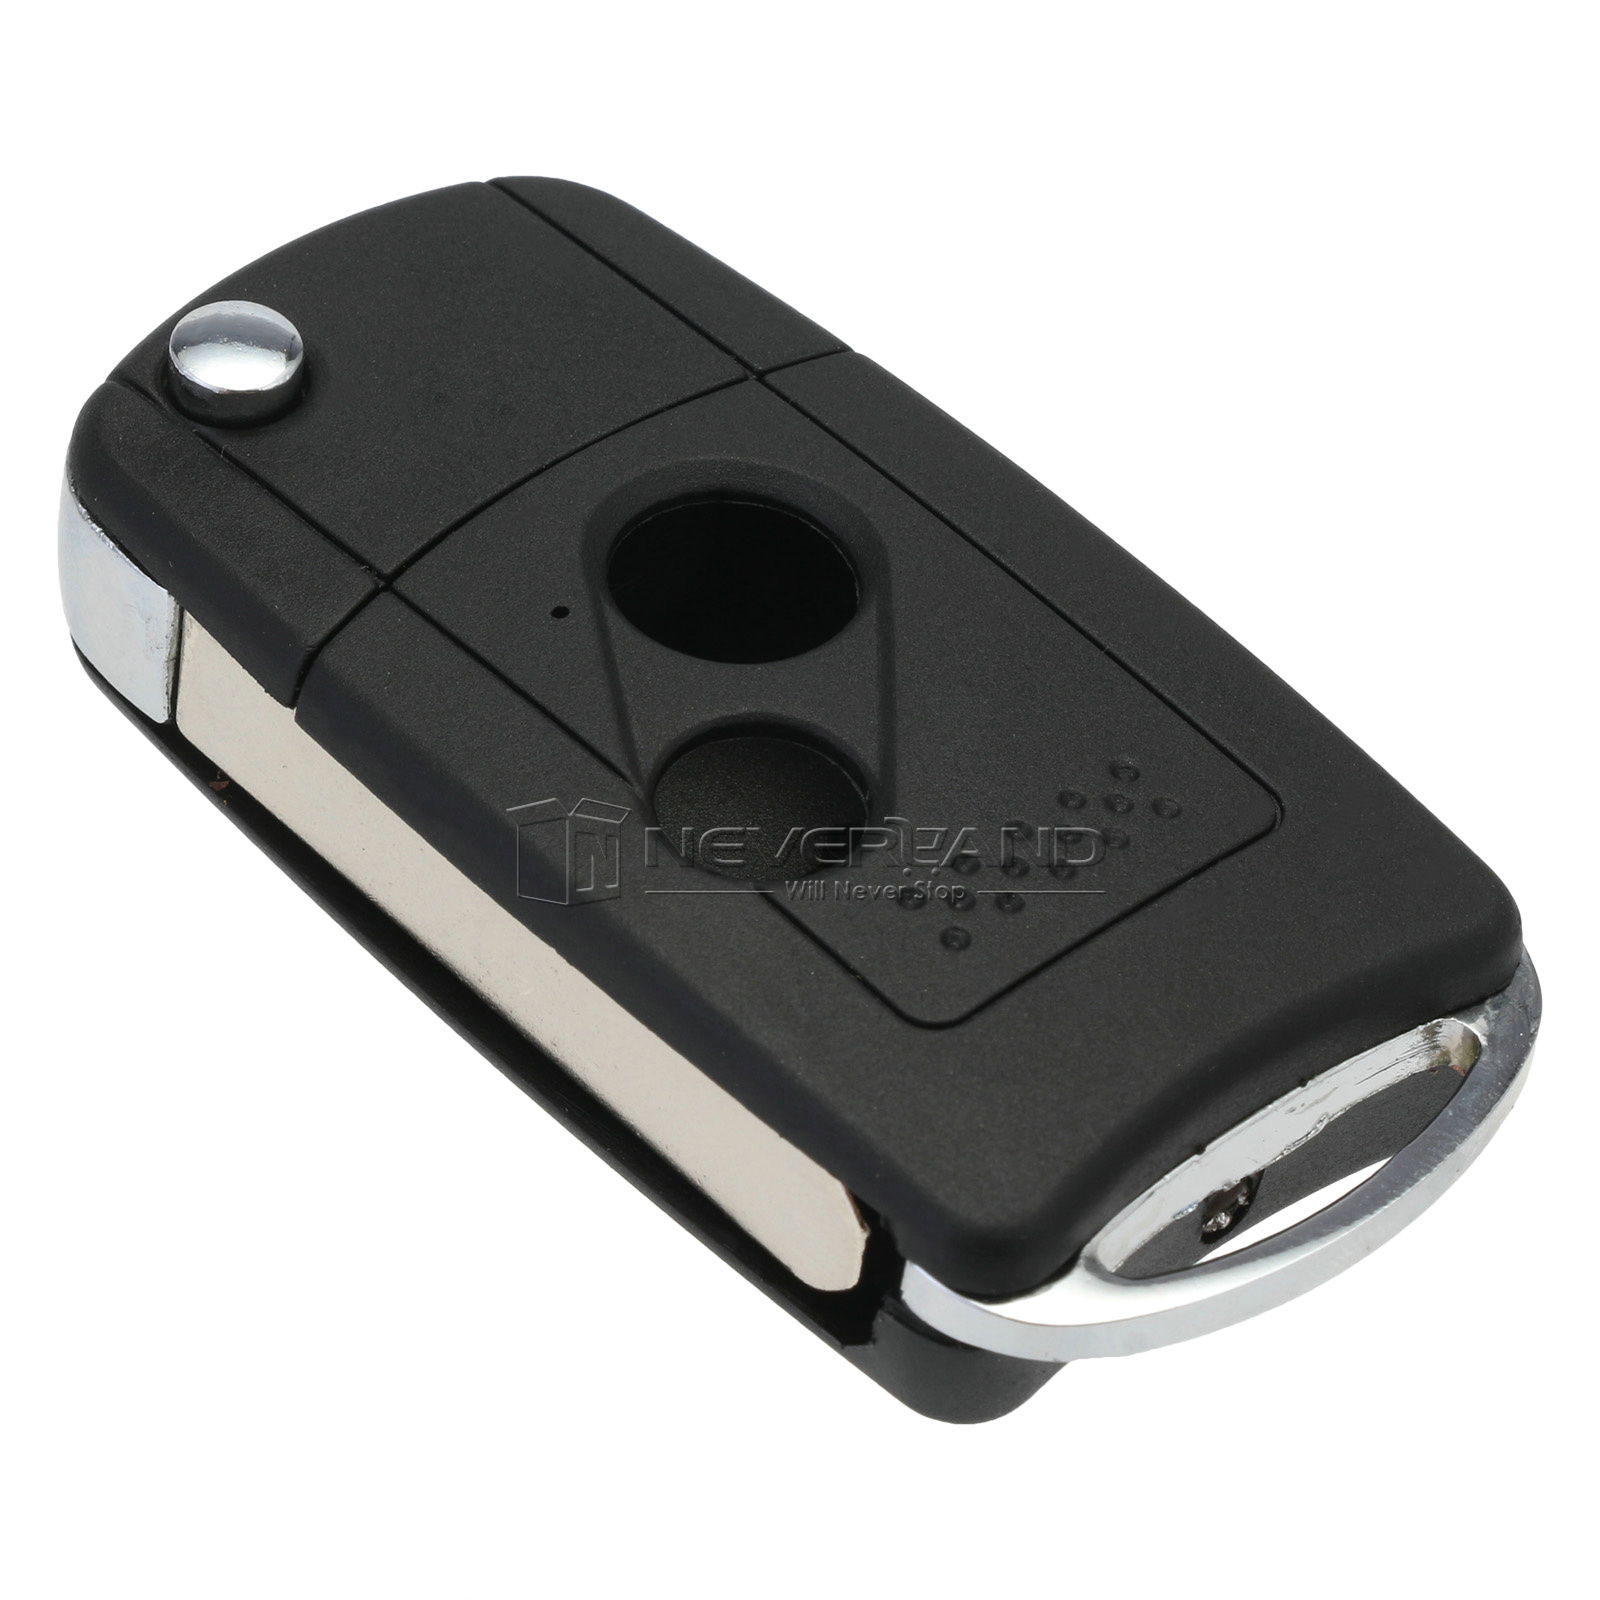 Remote Key Case Fit For Honda Accord Civic Crv Pilot Fit Replacement